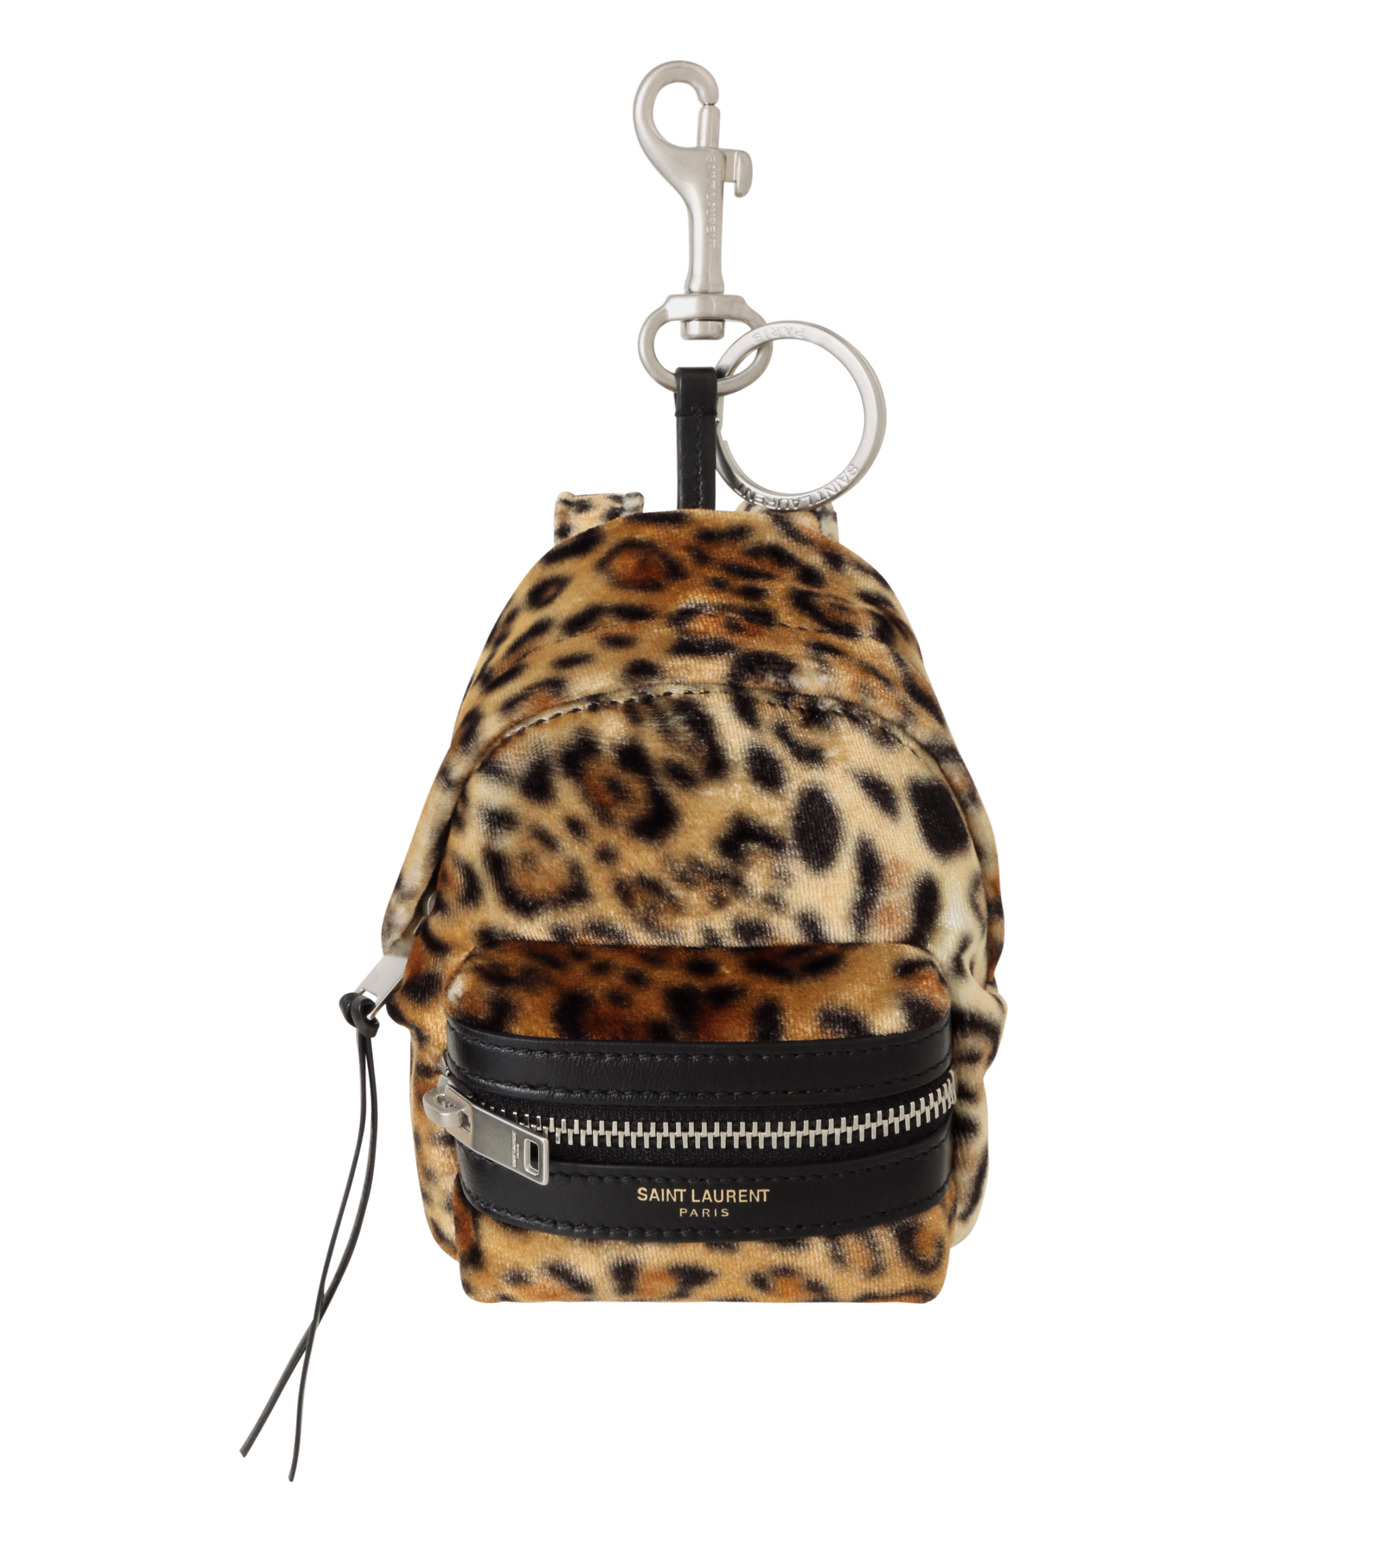 SAINT LAURENT(サンローラン)のLeopard Mini Backpack-BEIGE-441911-GRO7E-52 拡大詳細画像1